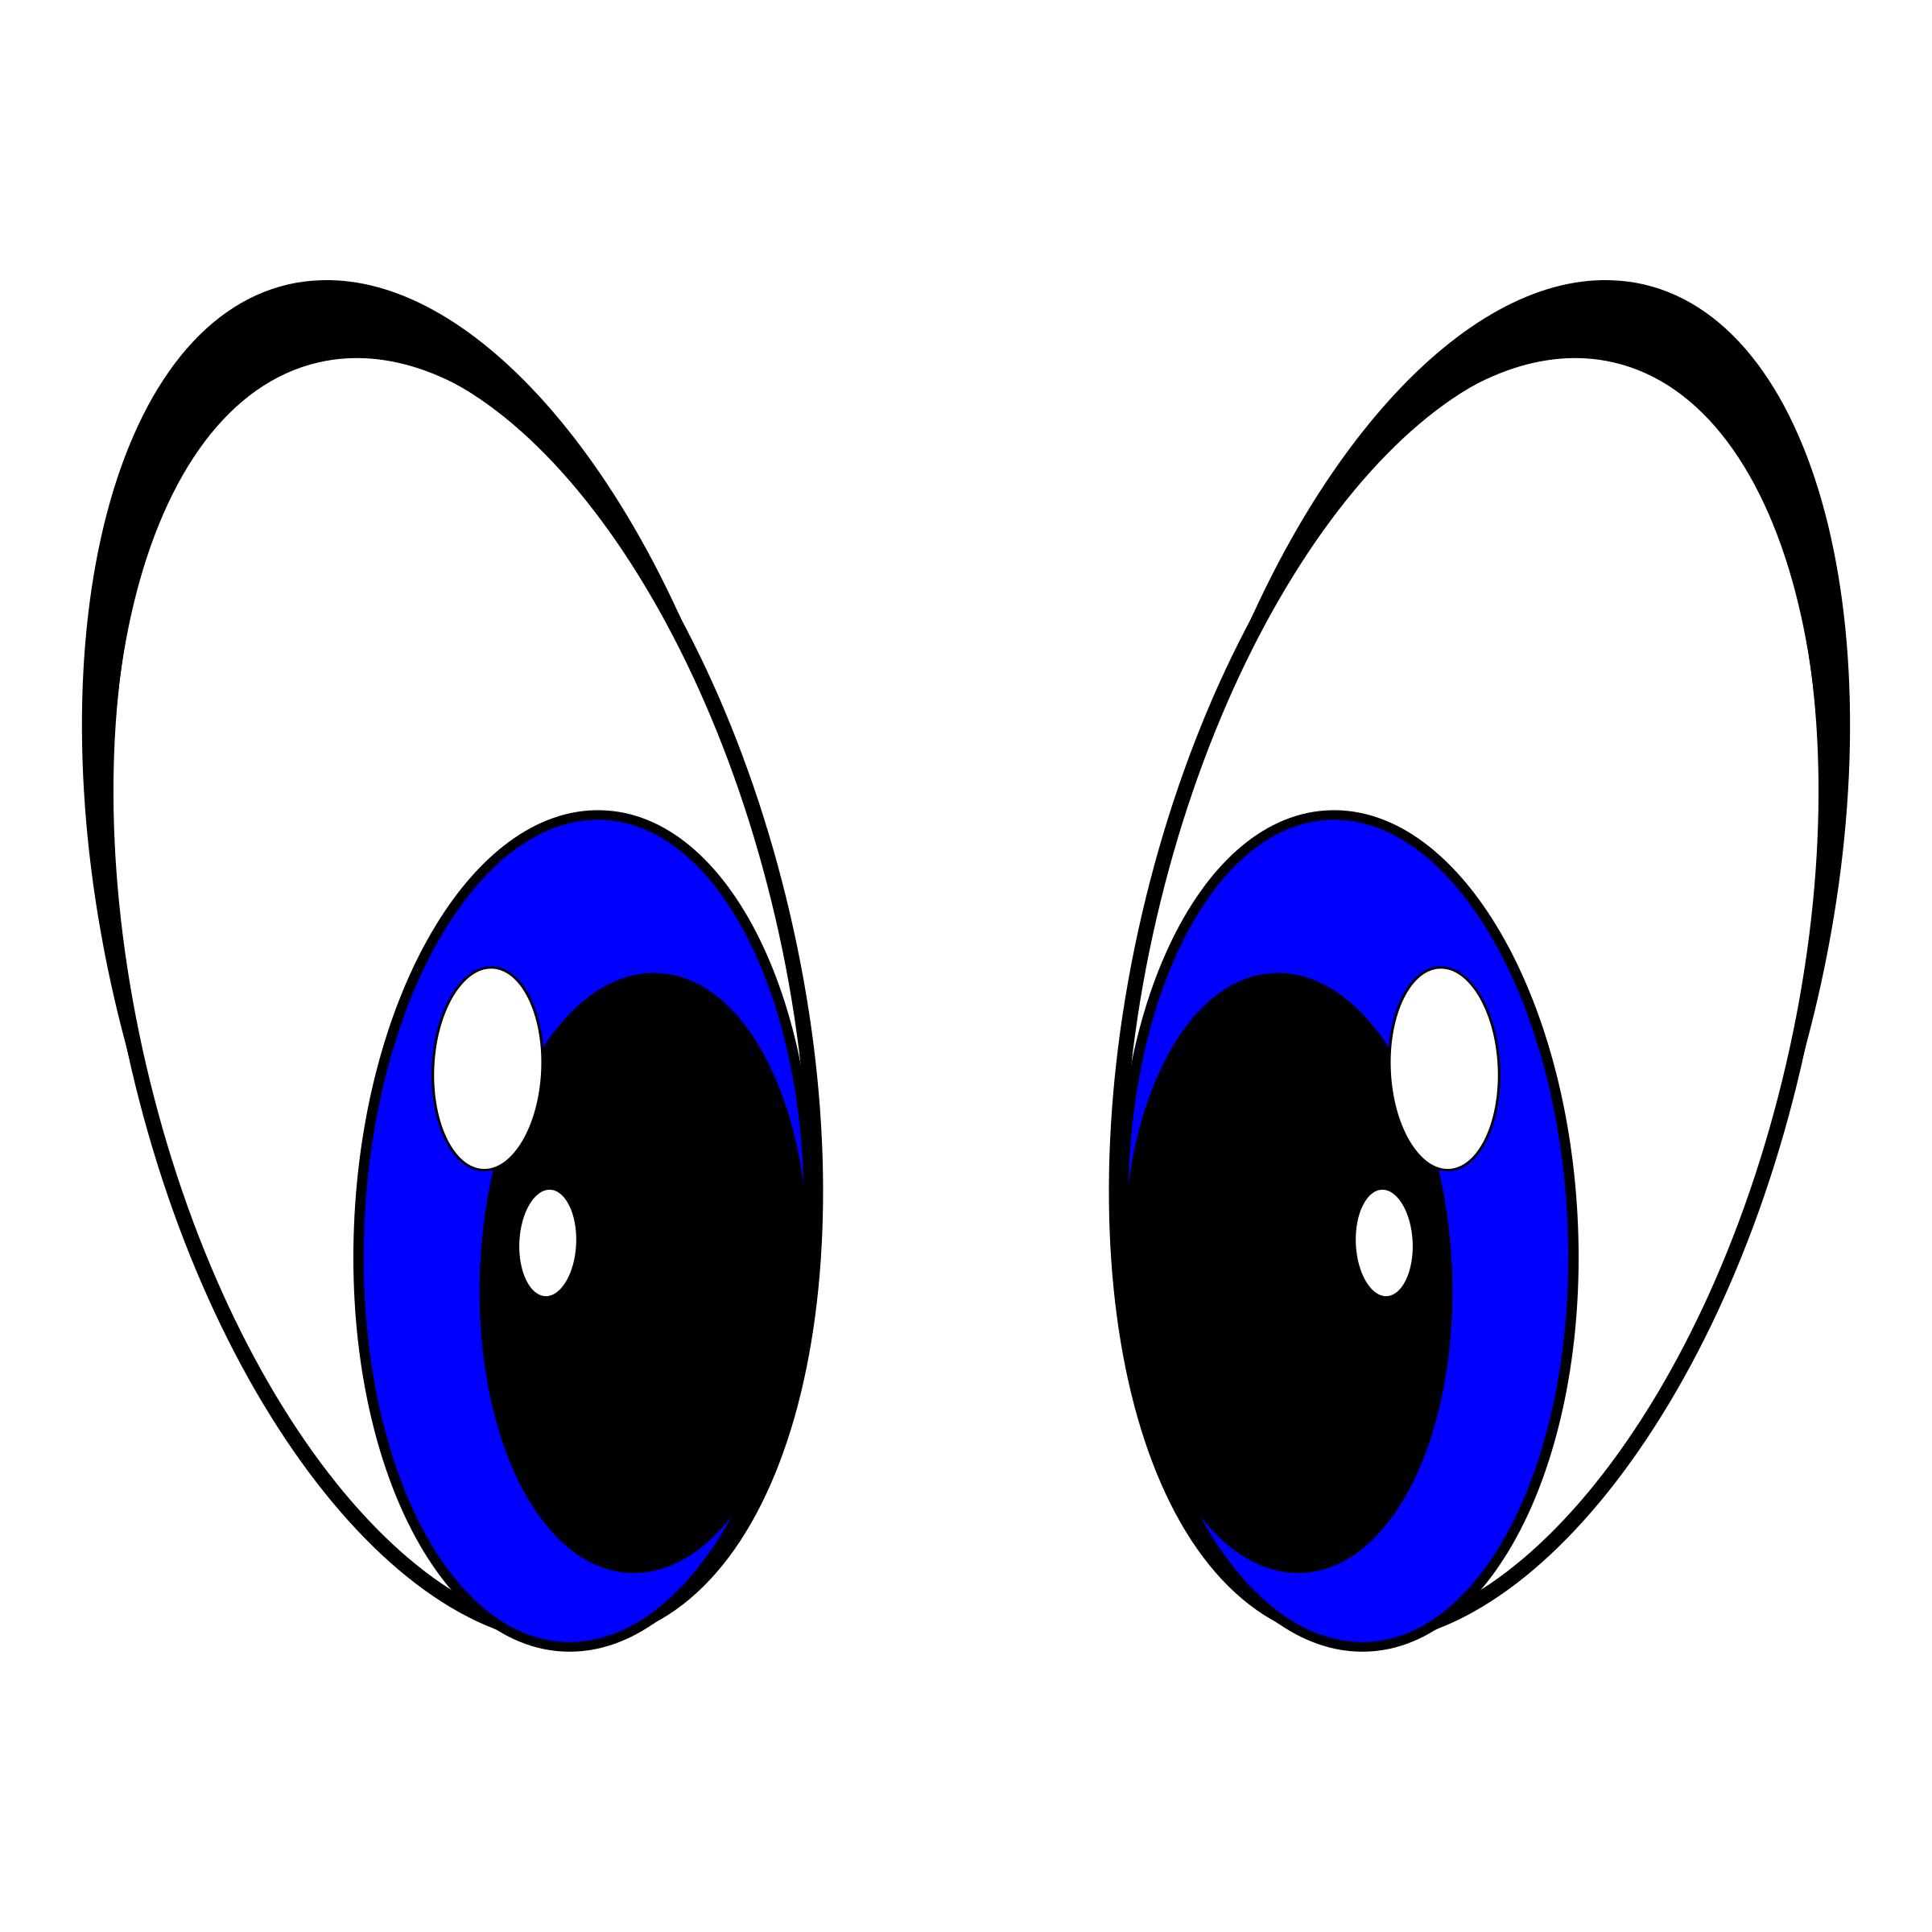 Cartoon eye png. Big eyes icons free